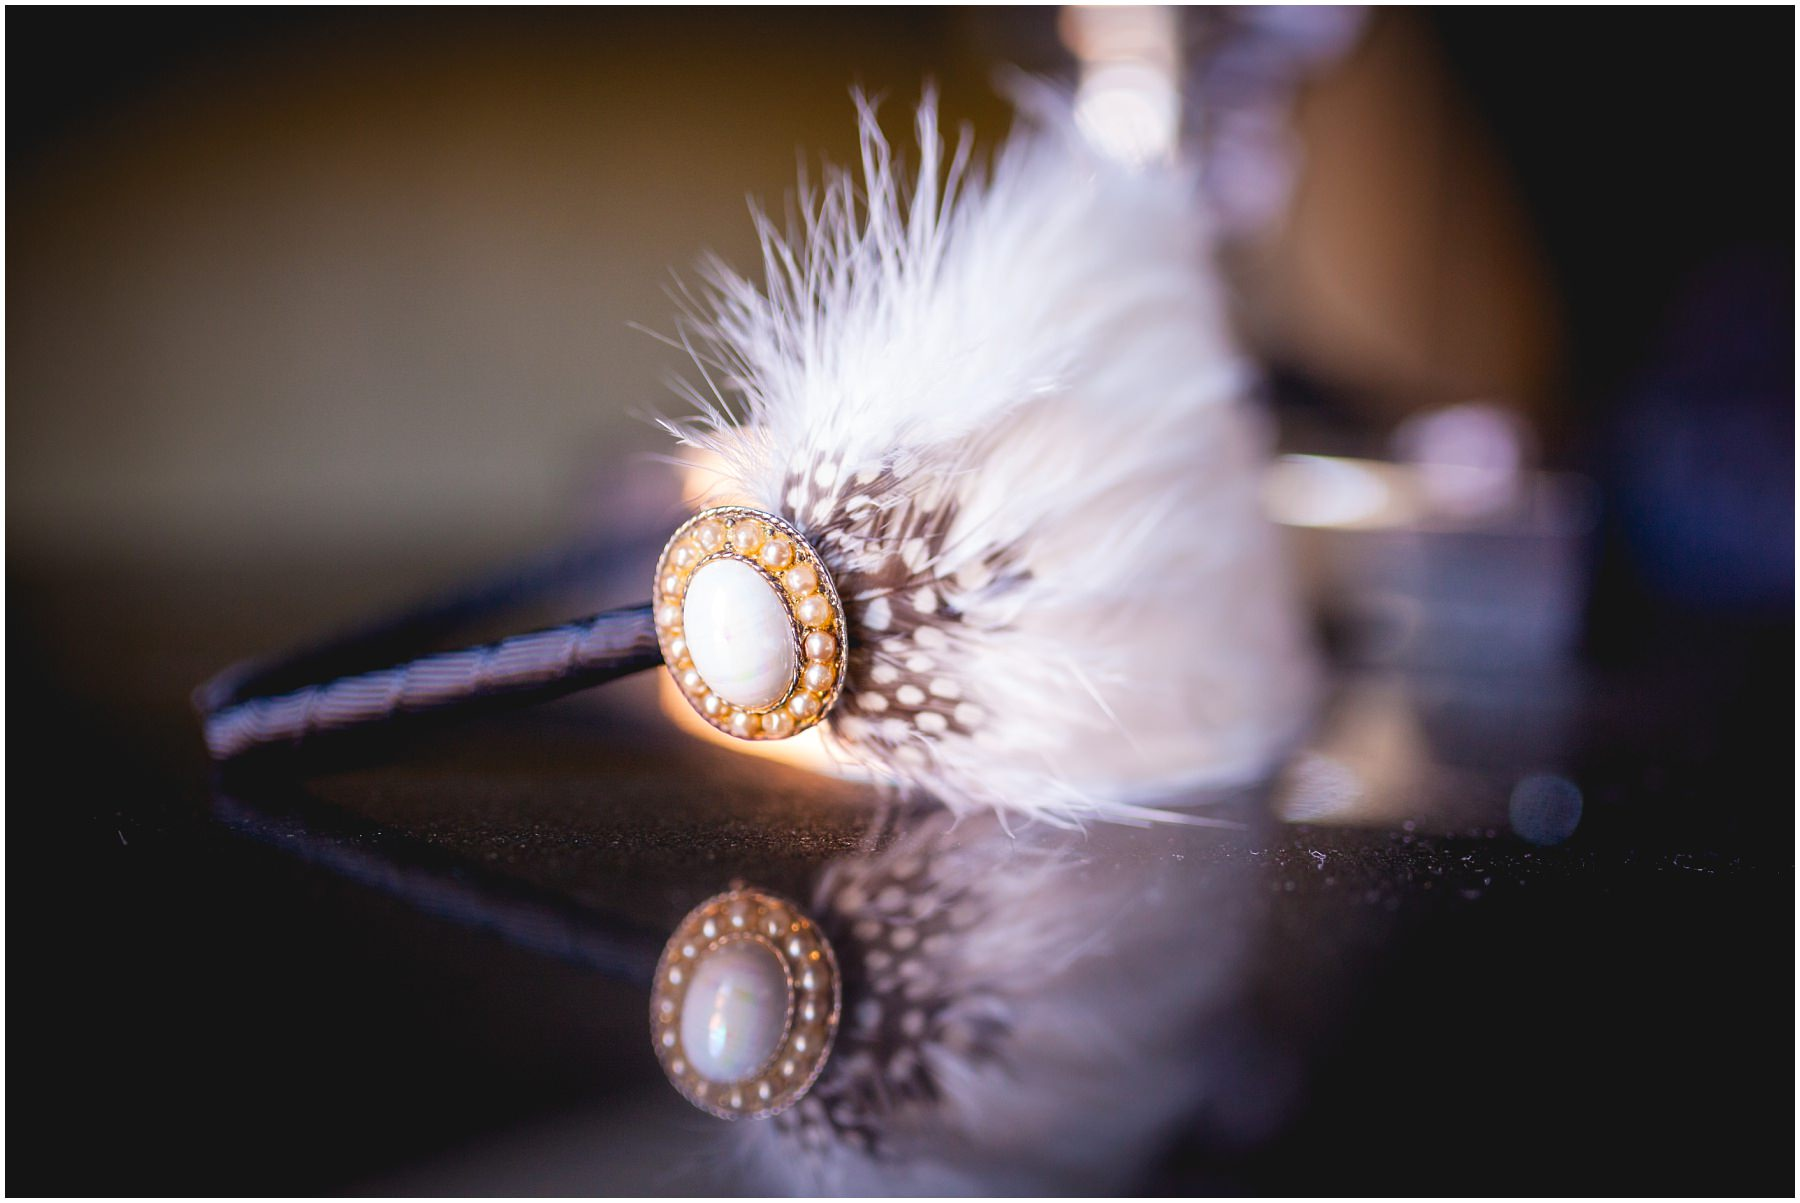 A hair accessory sat on a bedside table at the belle epoque